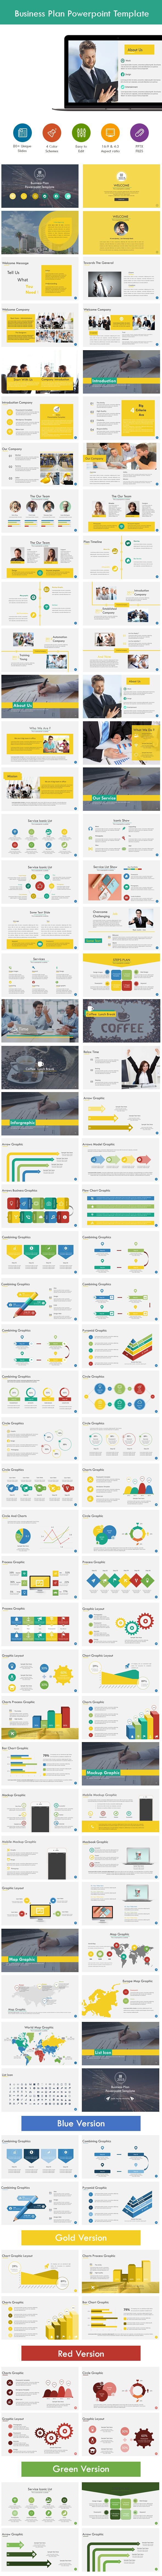 Business Plan Powerpoint Presentation Template #slides Download: http://graphicriver.net/item/business-plan-powerpoint/14475585?ref=ksioks